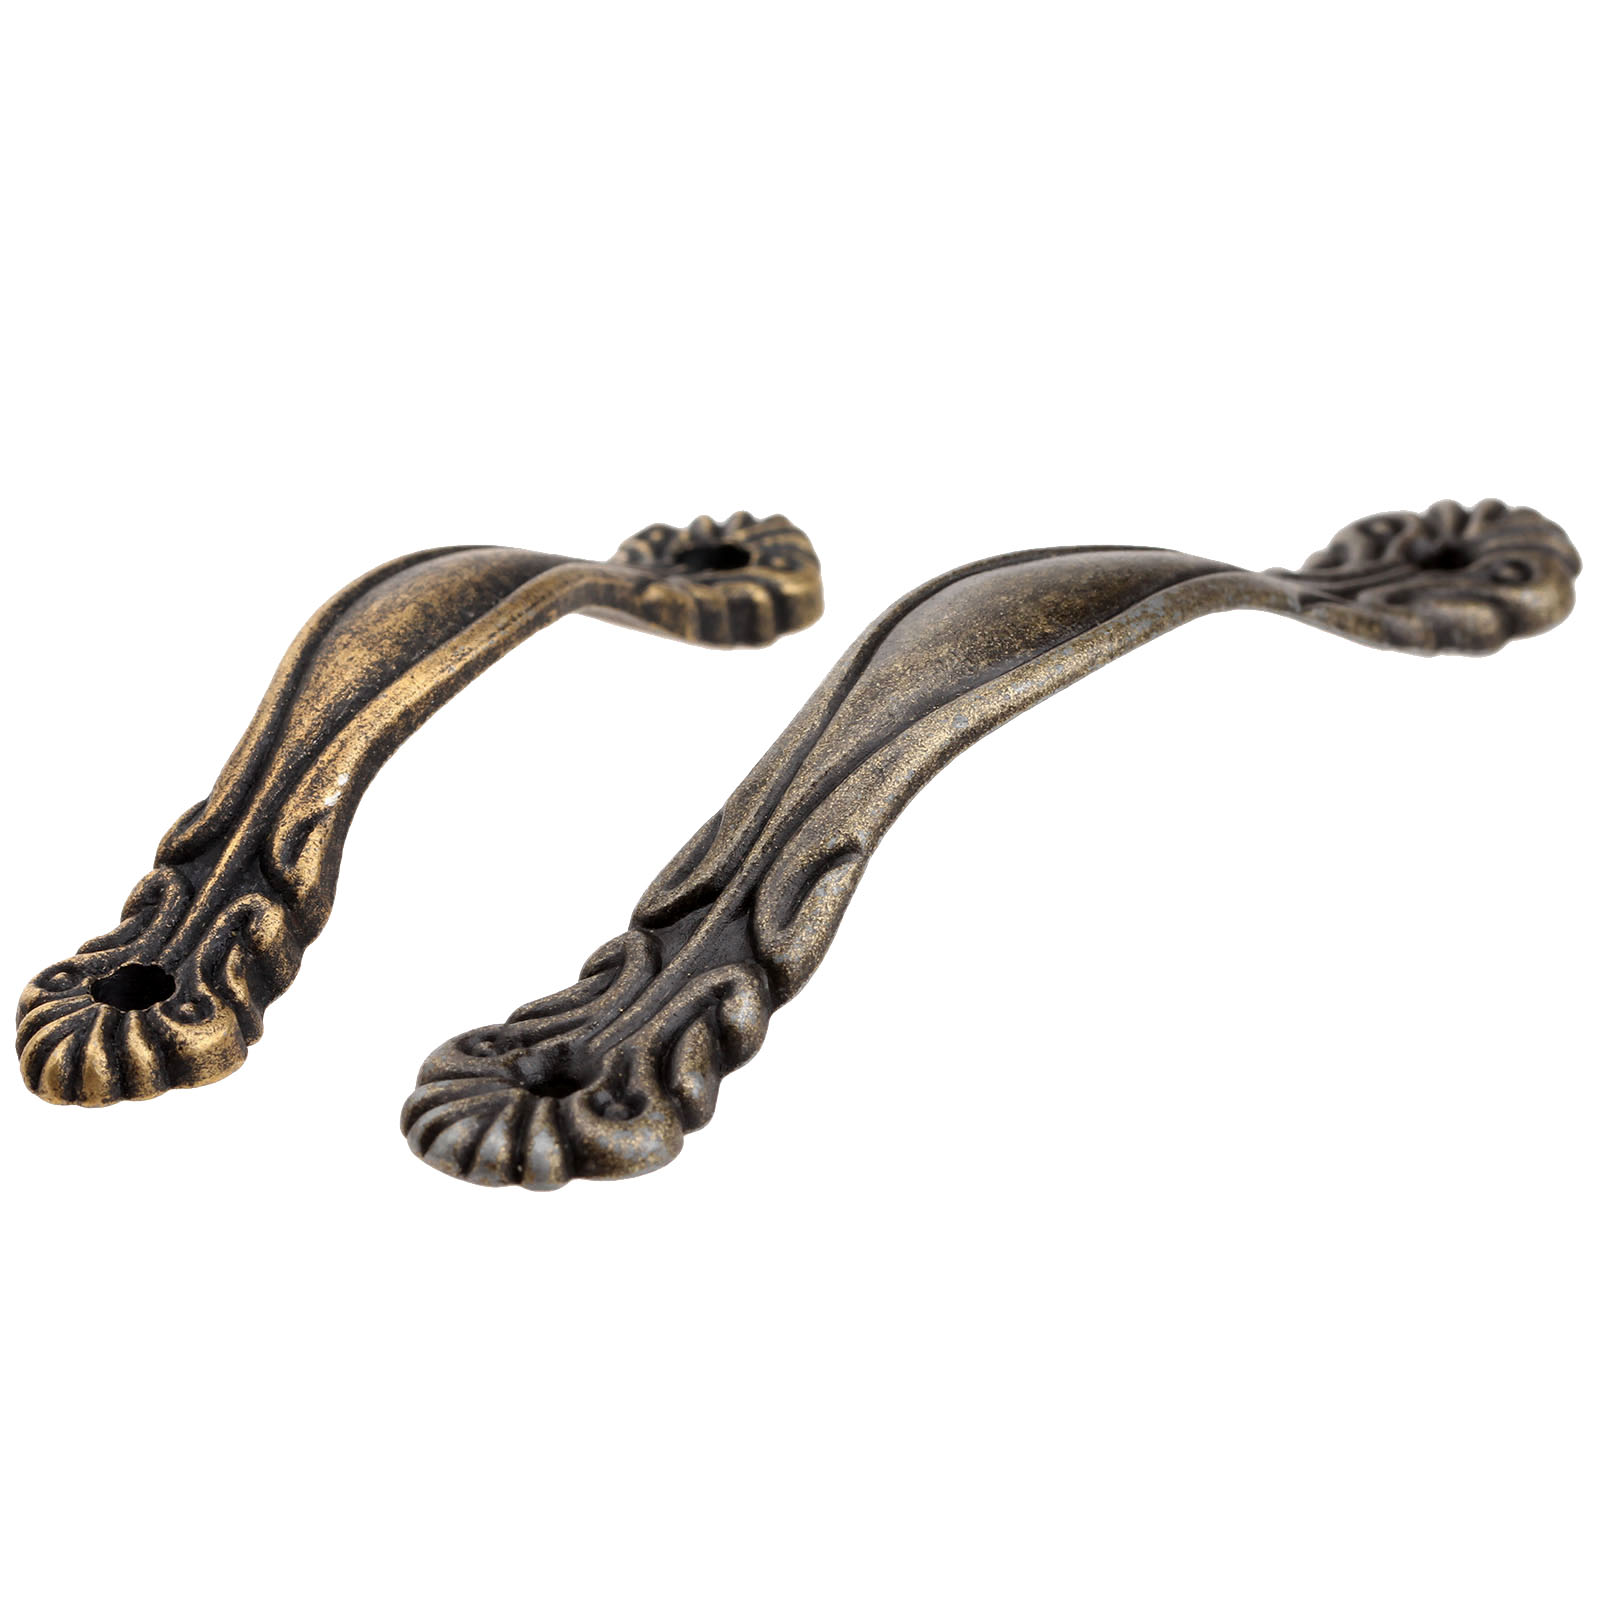 Impeccable Brass Cabinet Knobs Handles Furniture Knobs Vintage Handles Furniture Knobs Vintage Kitchencupboard Dresser Handles Drawer Pull Jewelry Box Knobs Brass Cabinet Knobs